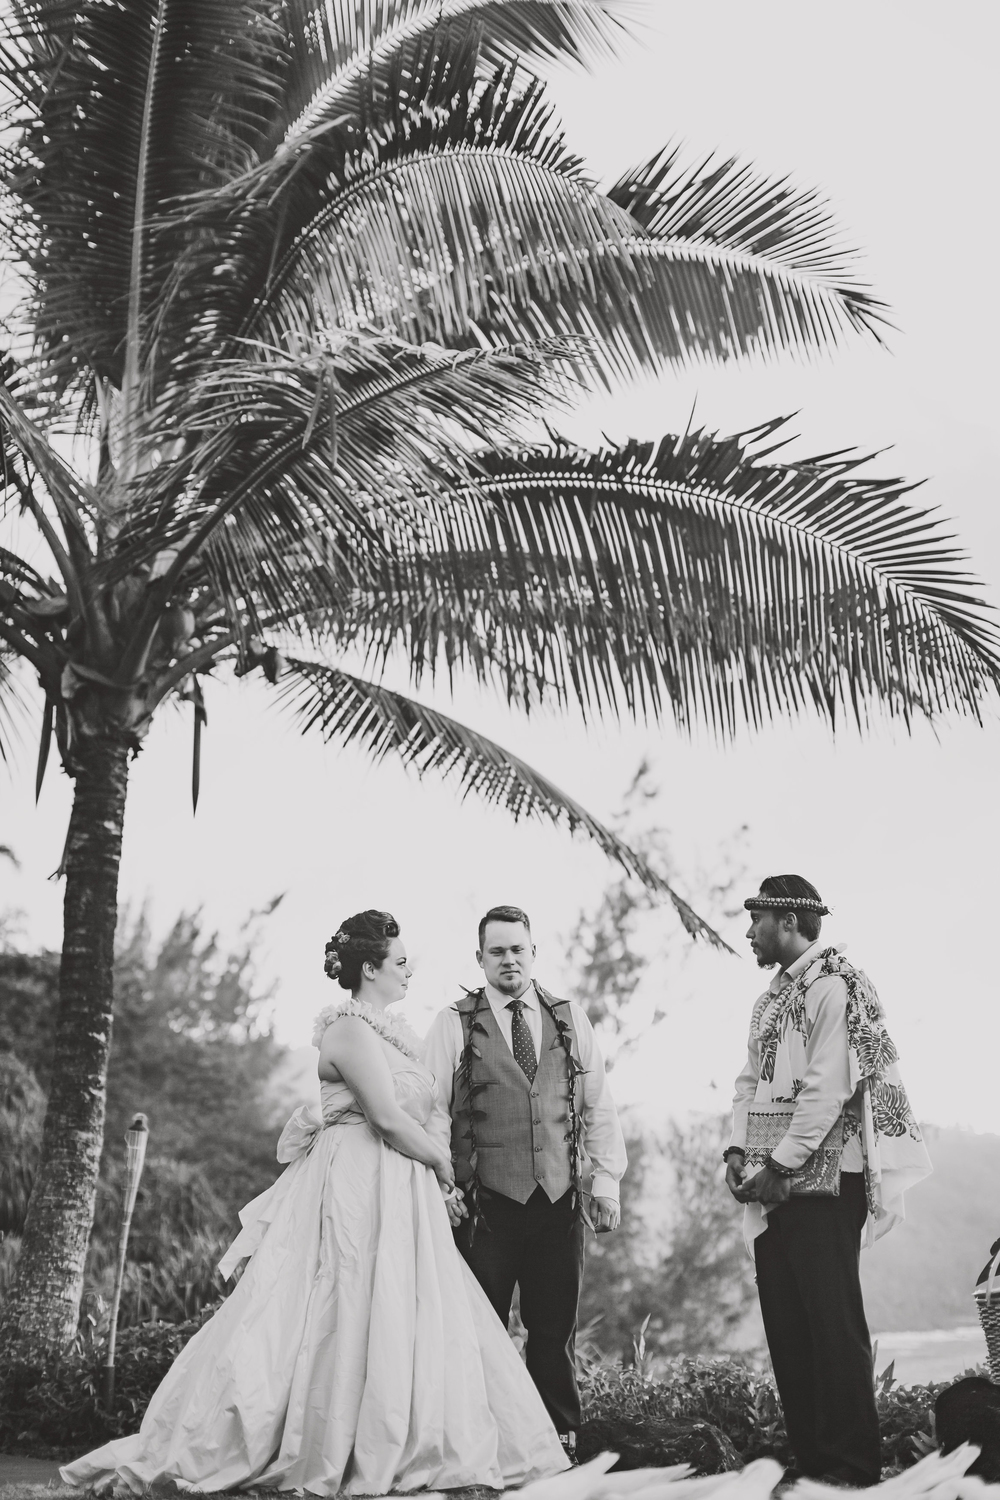 angie-diaz-photography-maui-elopement-54.jpg